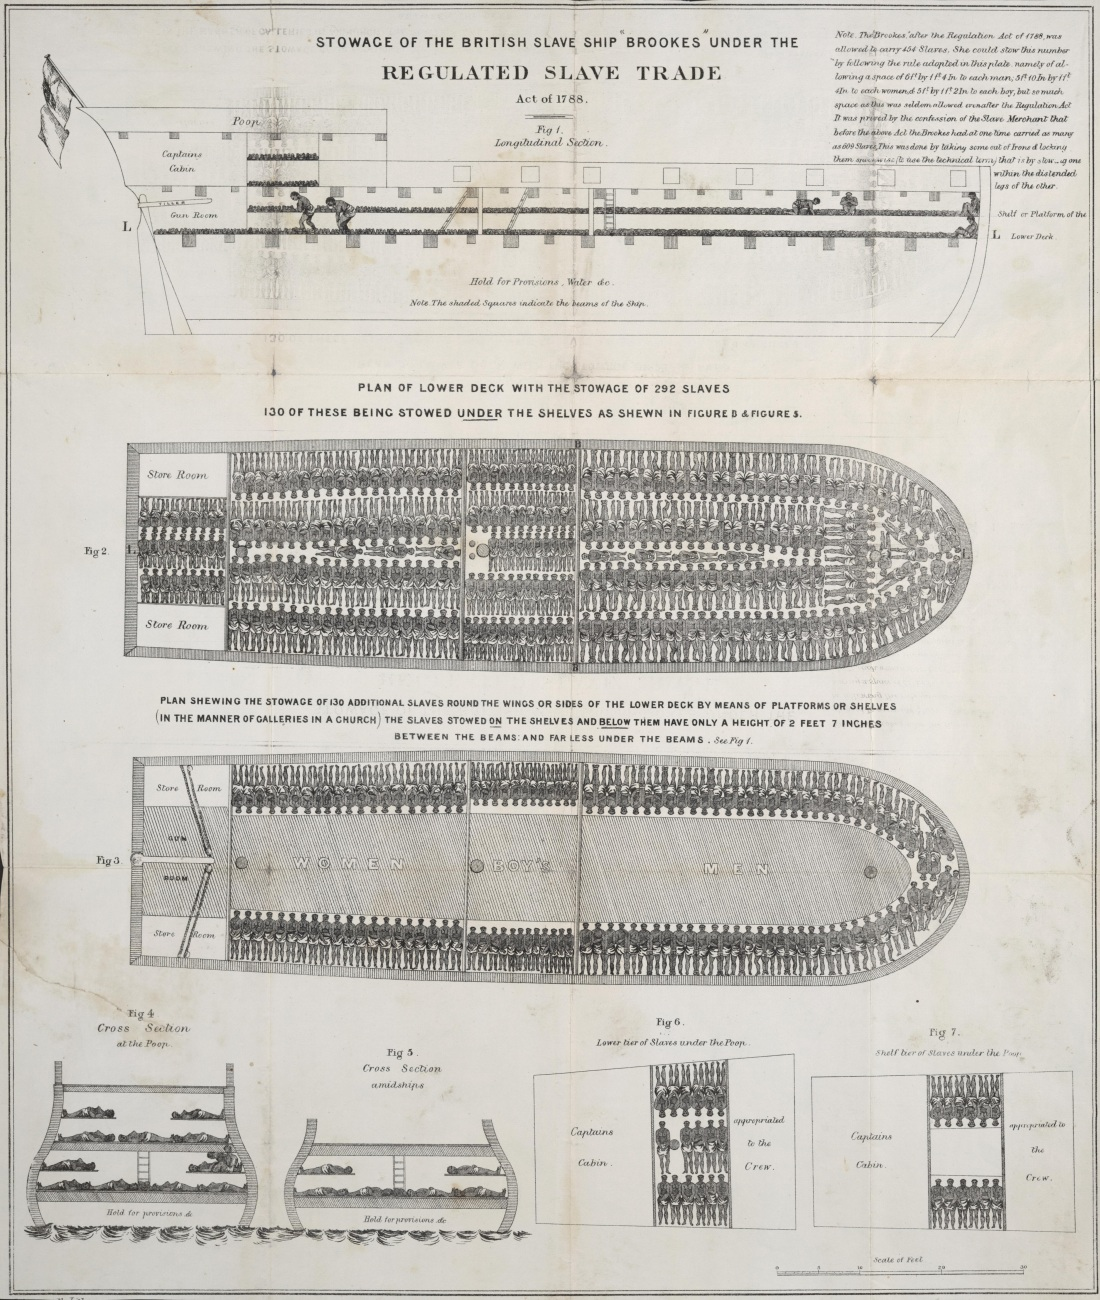 Brookes slave ship plan, 1788.